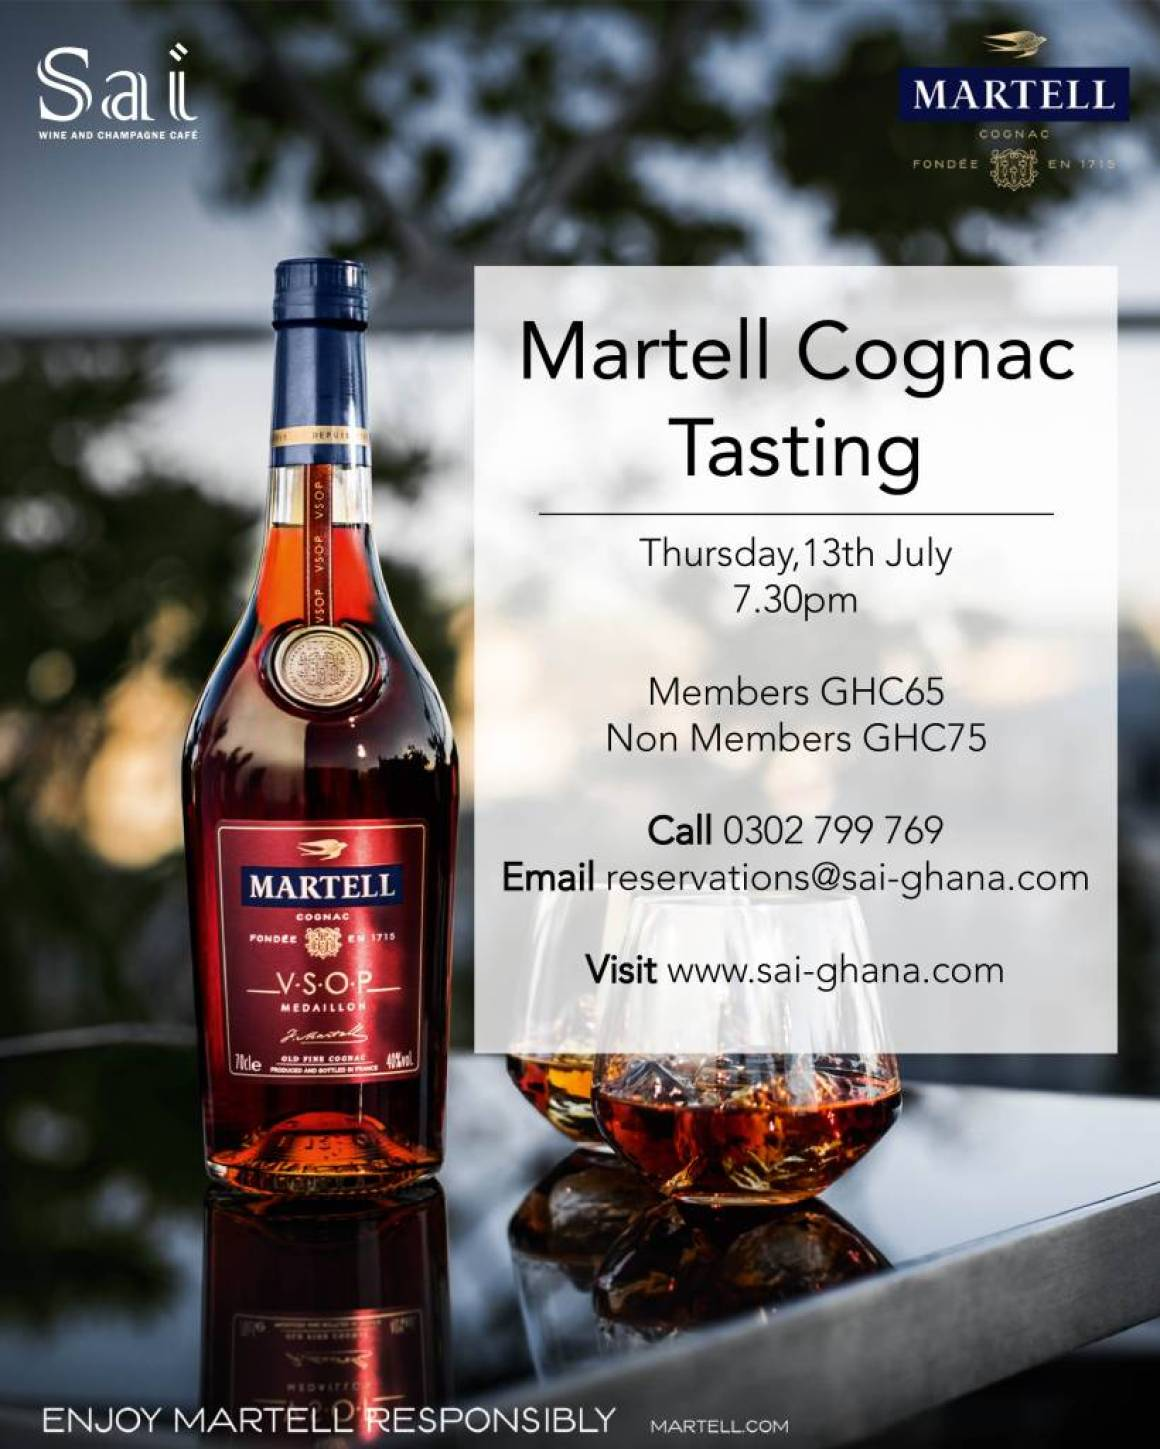 Martell means Congnac at Sai Wine tasting session this Thursday